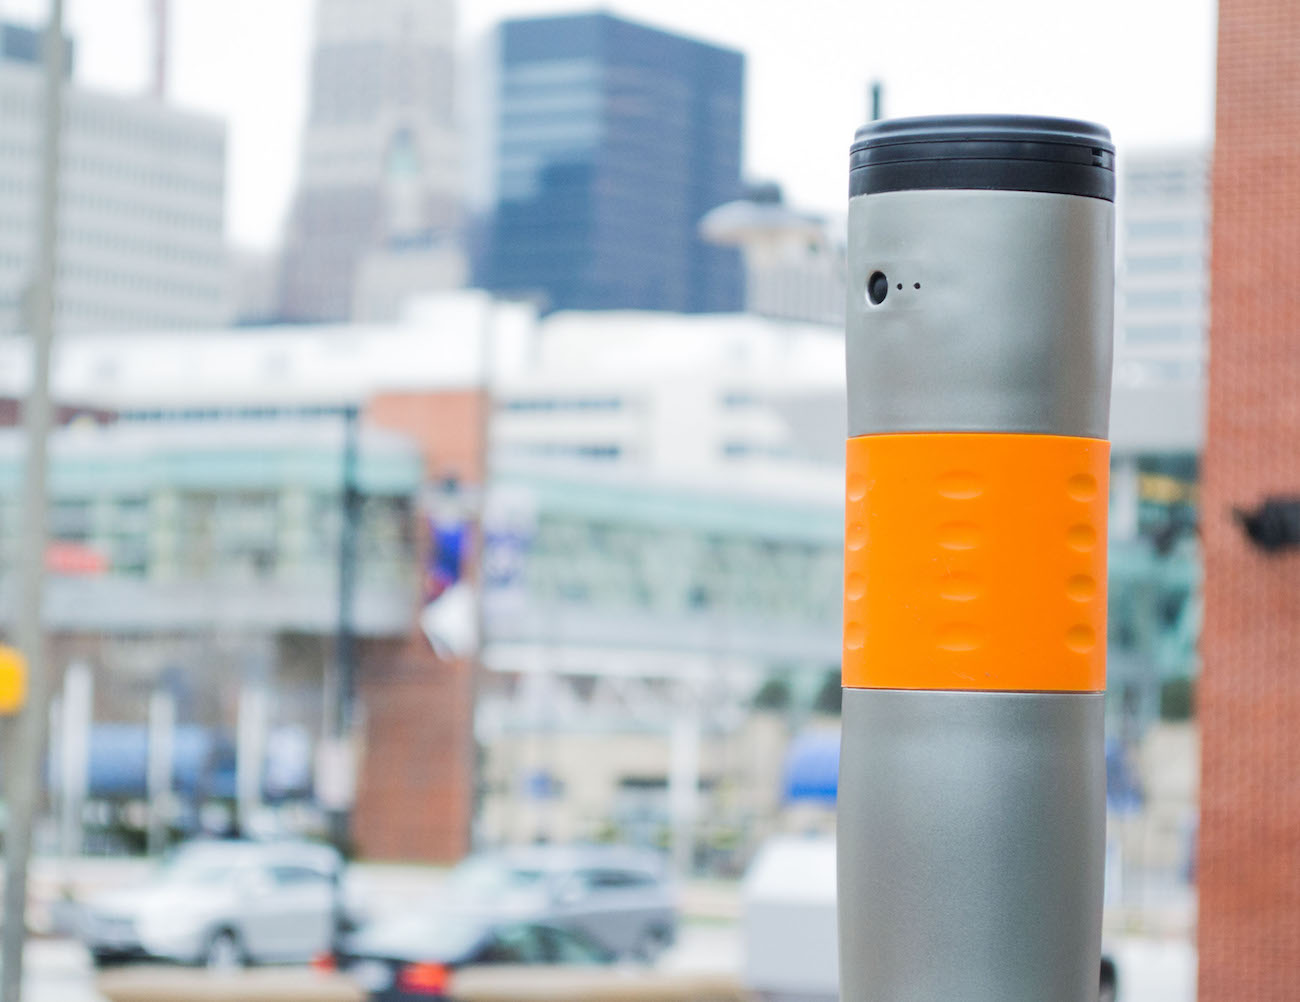 mojoe - Coffee Maker + Travel Mug Review The Gadget Flow